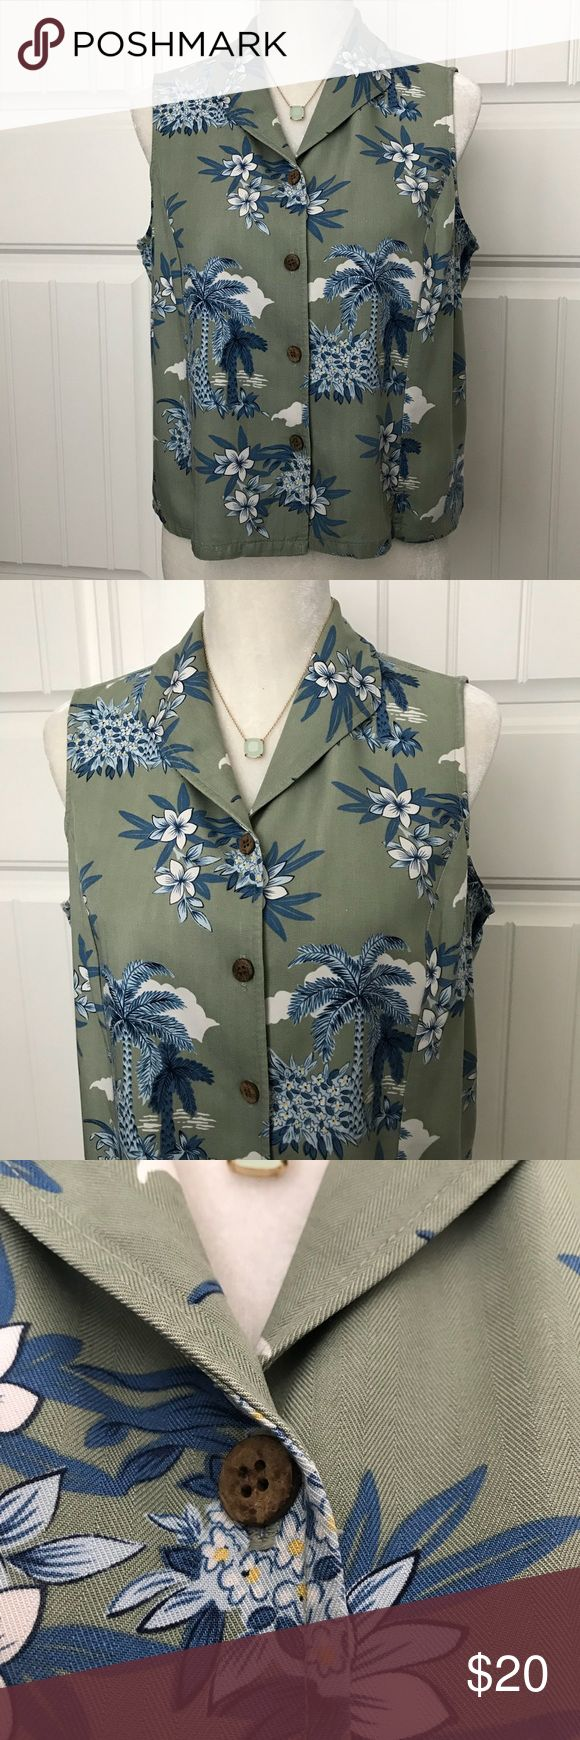 Adorable Hawaiian Shirt Size LP Adorable Hawaiian Shirt Size LP in excellent pre-loved condition. It says large, but if fits more like a petite large. Totally adorable with jean or white shorts or capris. Could be dressed up with slacks. Measurements by request. La Cabana Tops Blouses